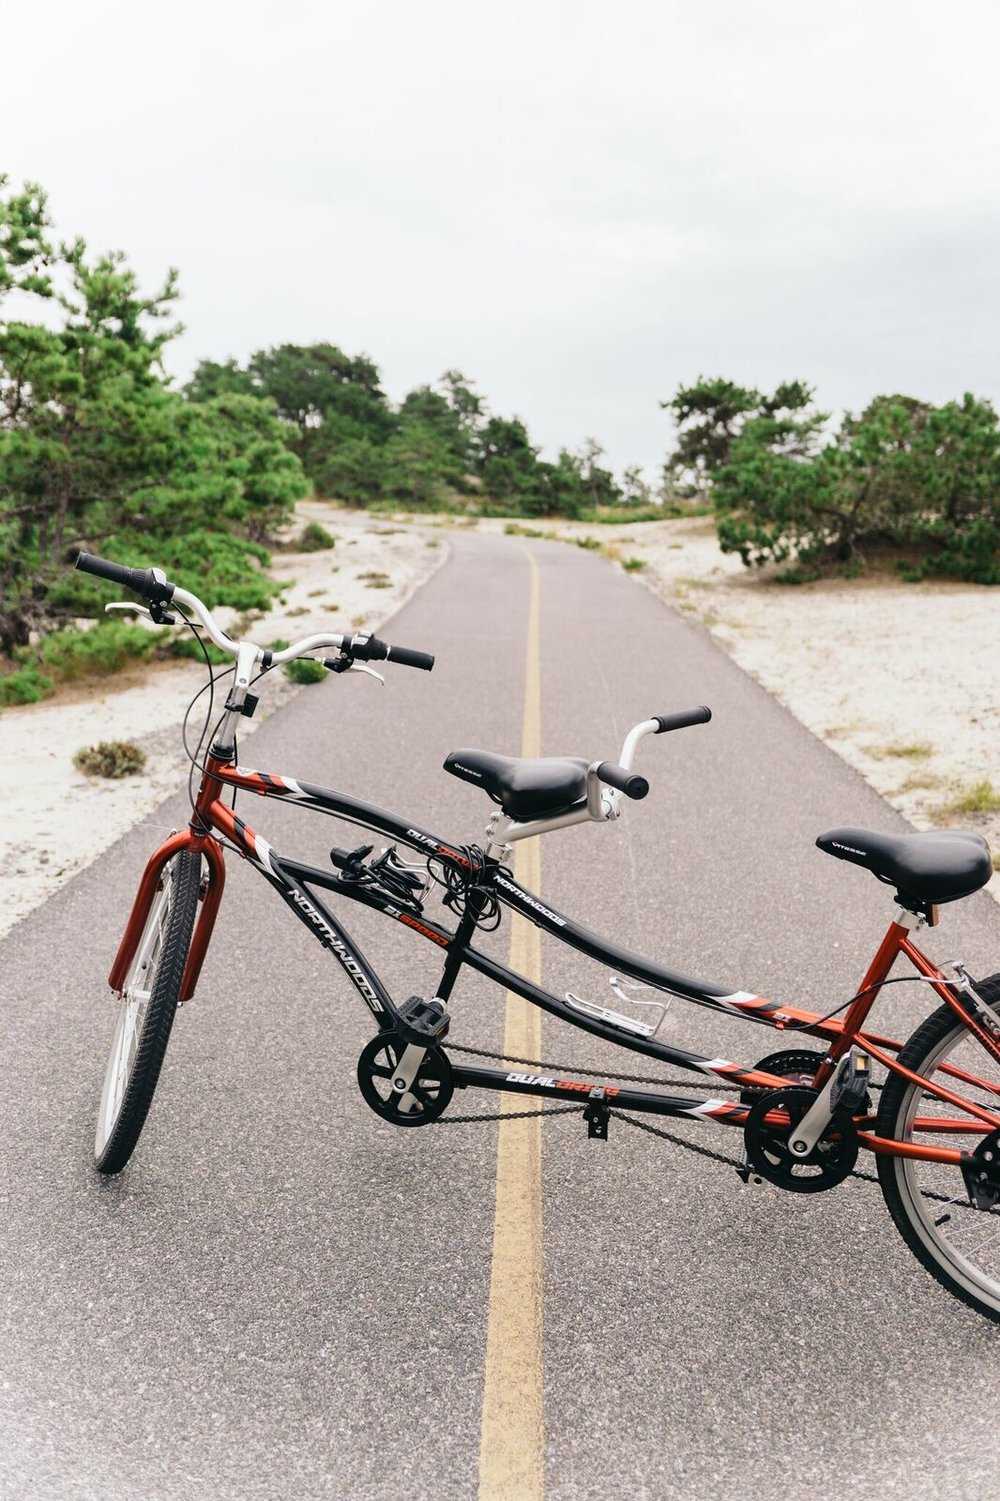 Renting a tandem bike was the best/worst idea ever